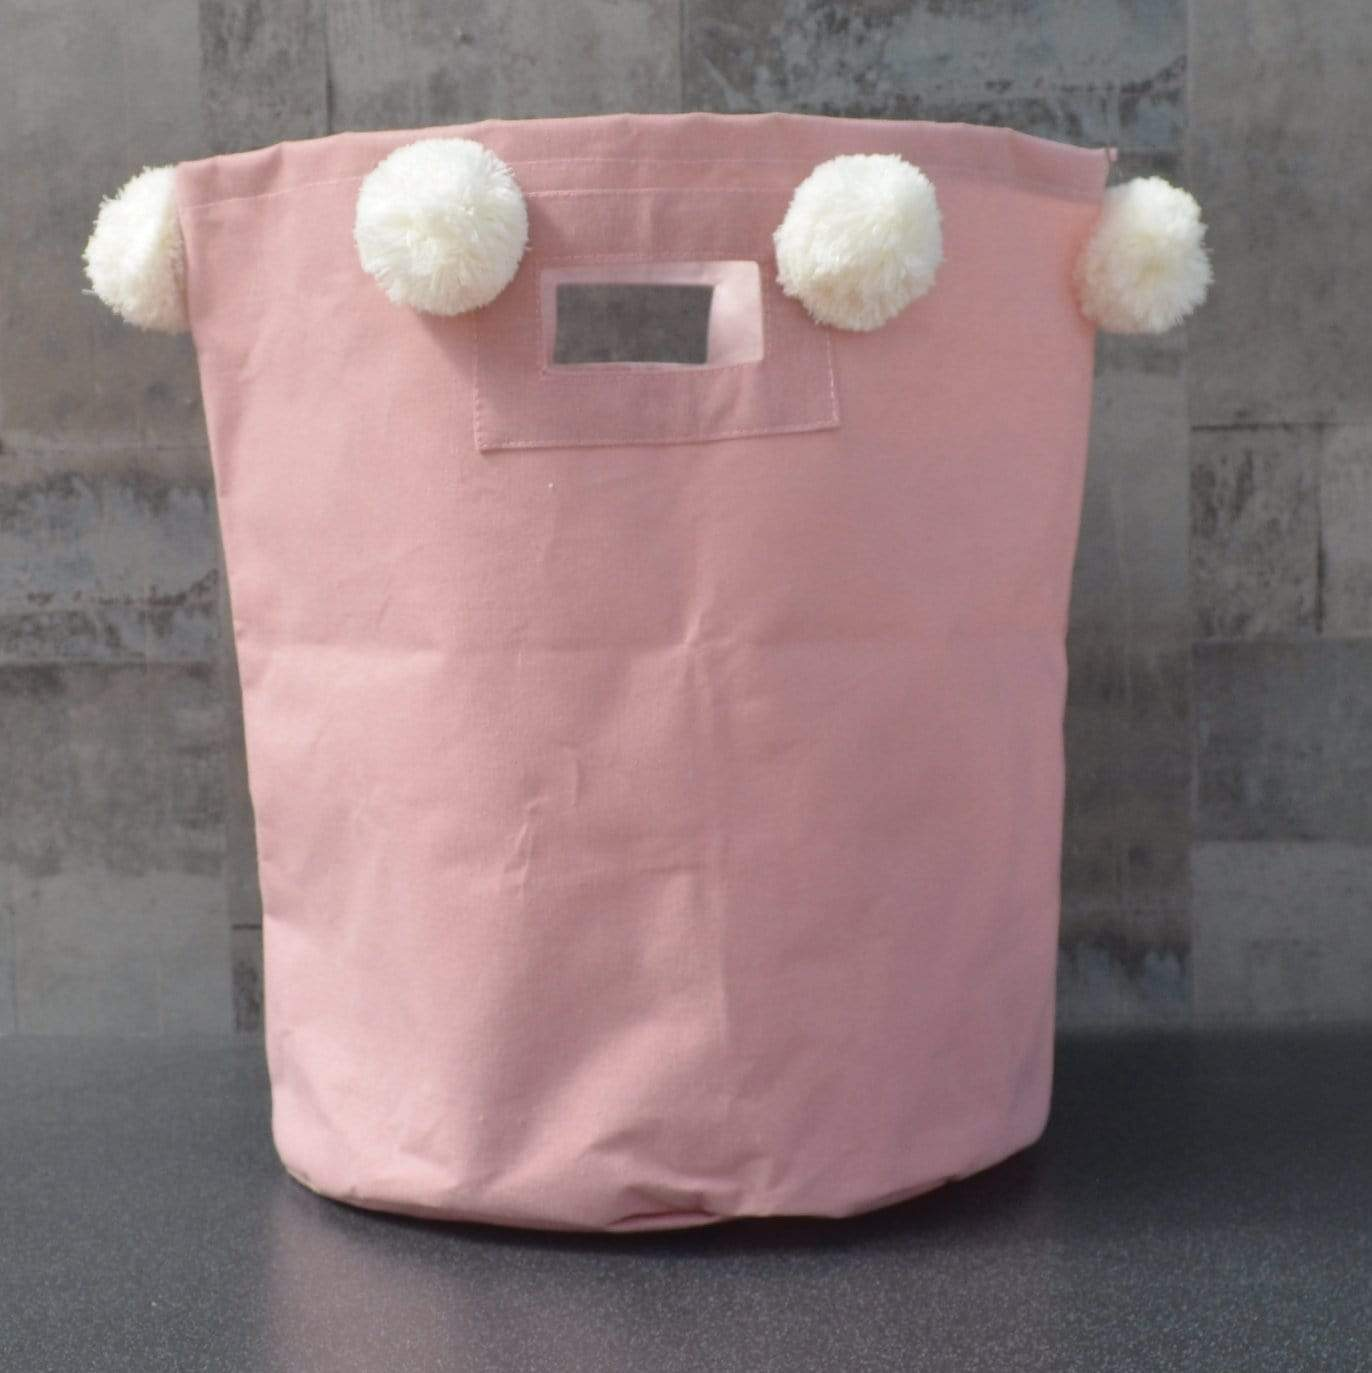 Candlelight Home Laundry Bags Laundry Bag with Pom Poms Pink 45cm 1PK